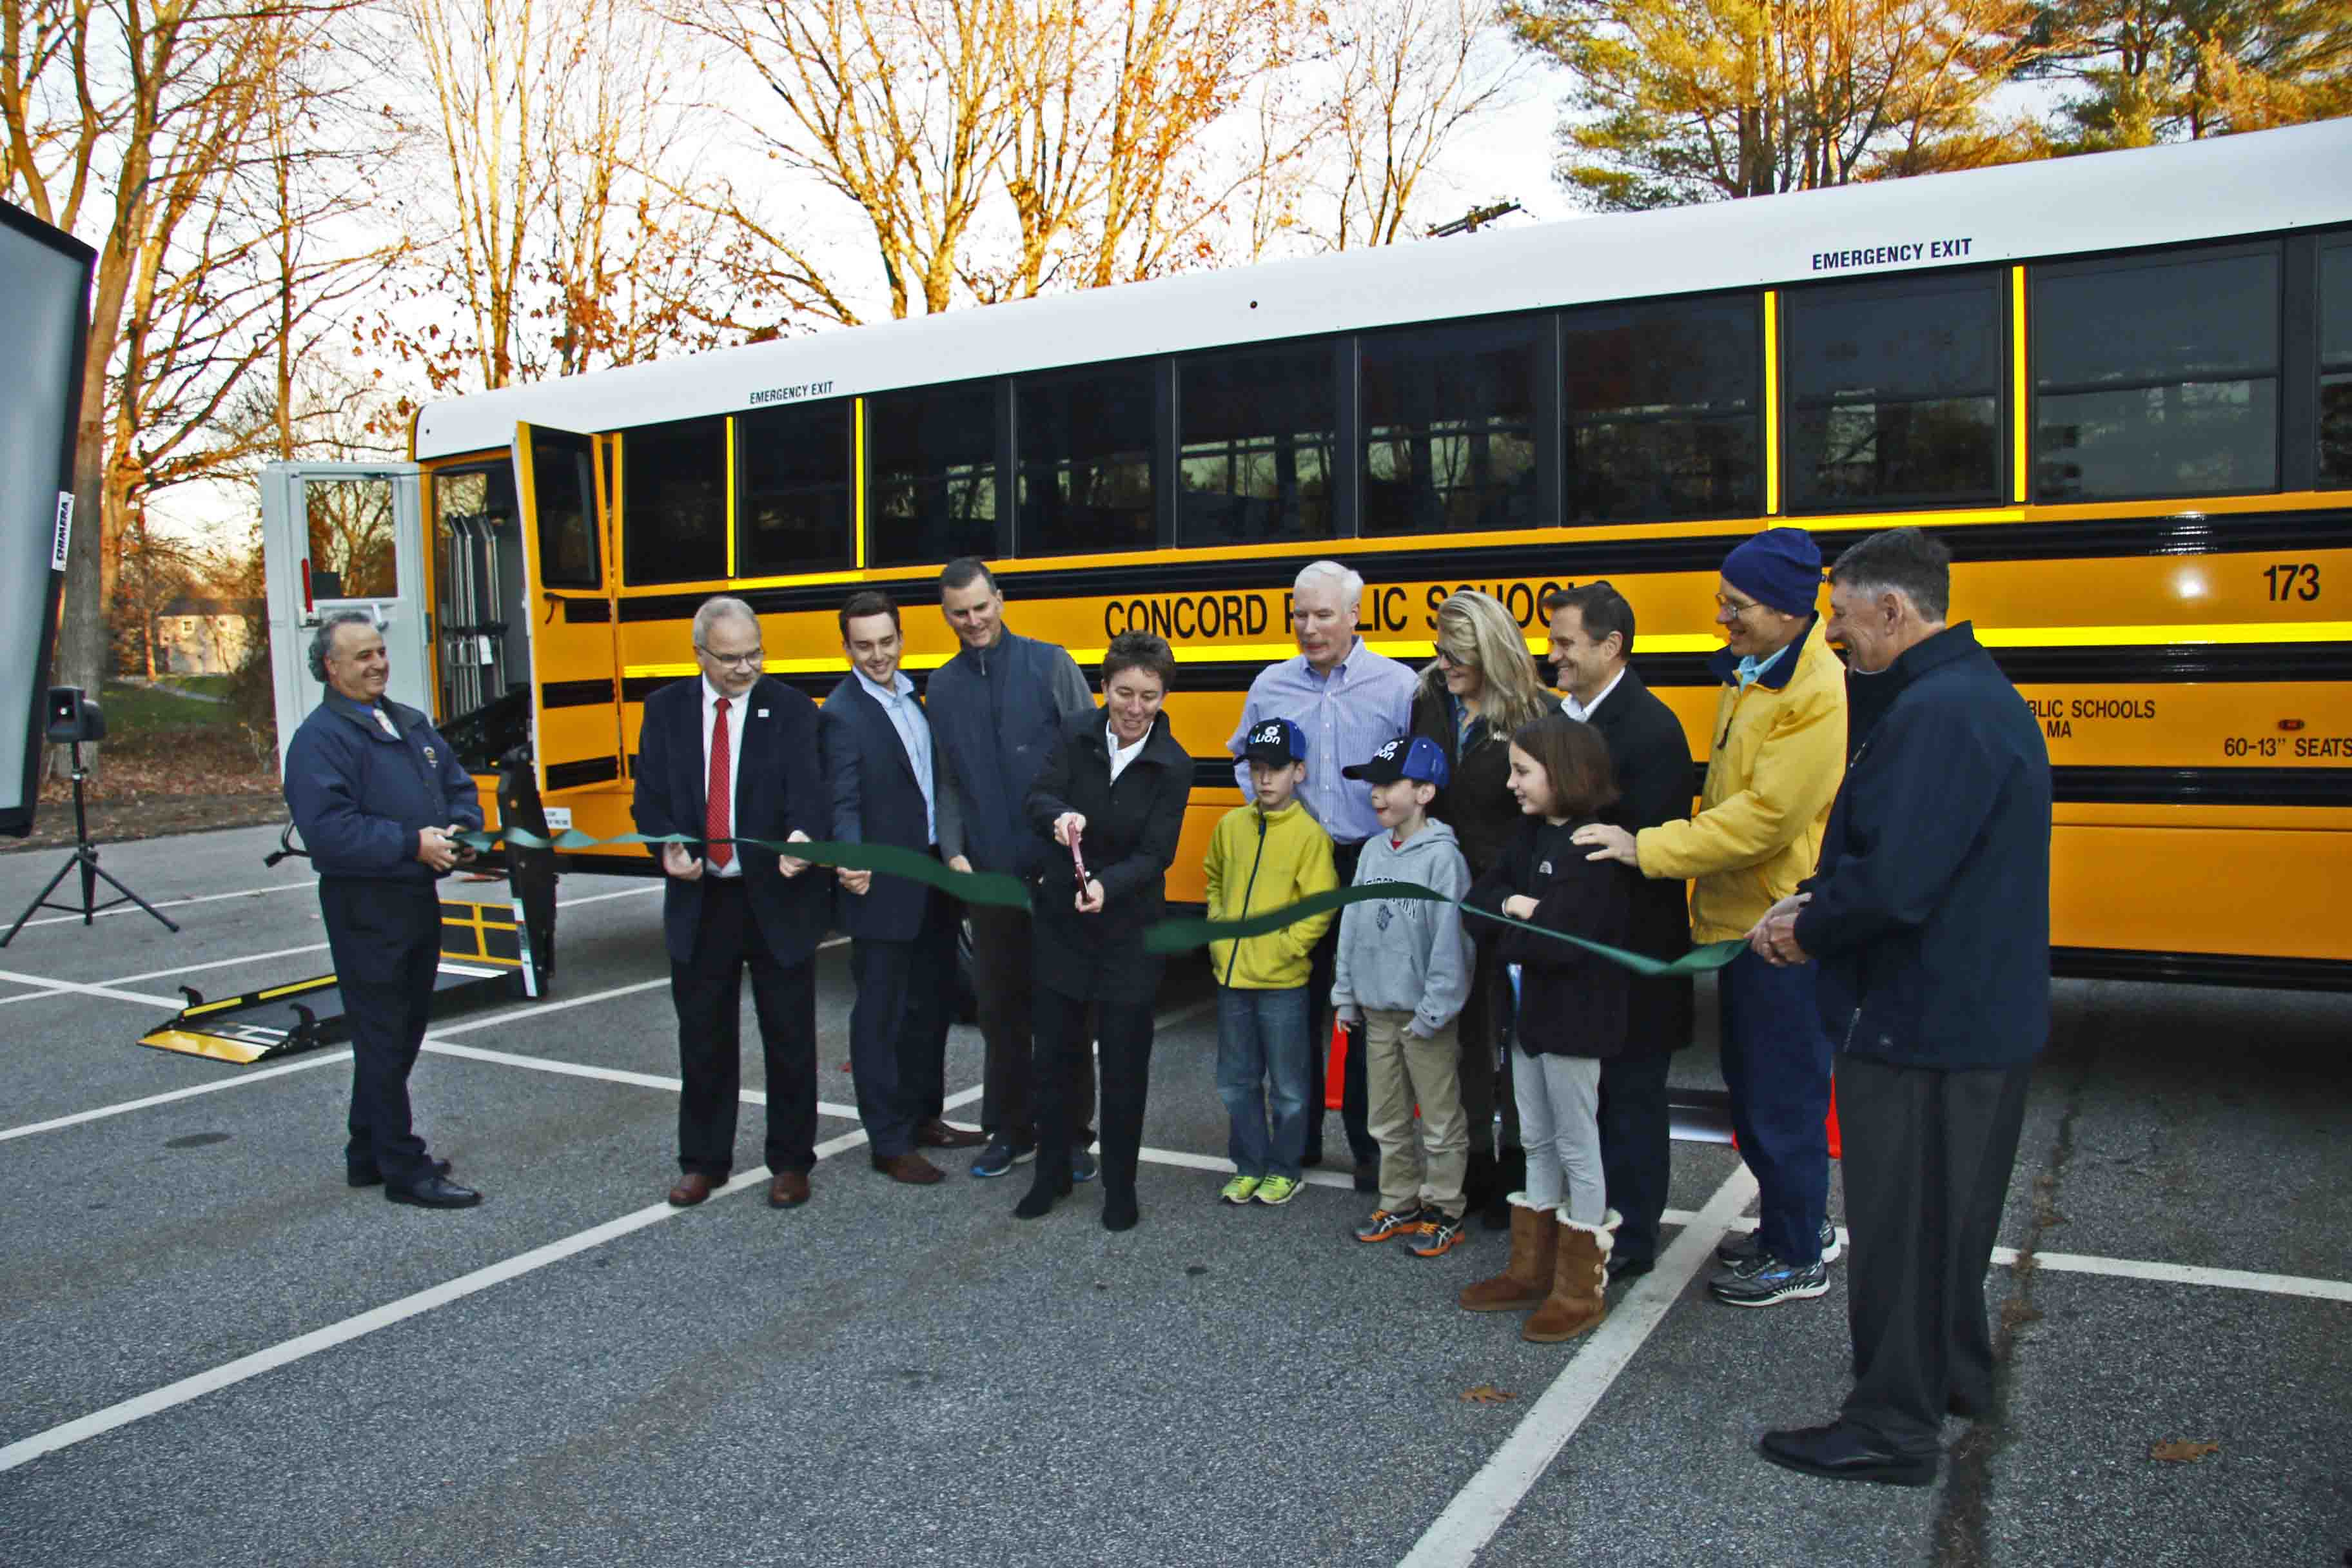 A CELEBRATION: Town leaders, students, and state officials gather to celebrate the state's first all-electric school bus with a ribbon-cutting ceremony.